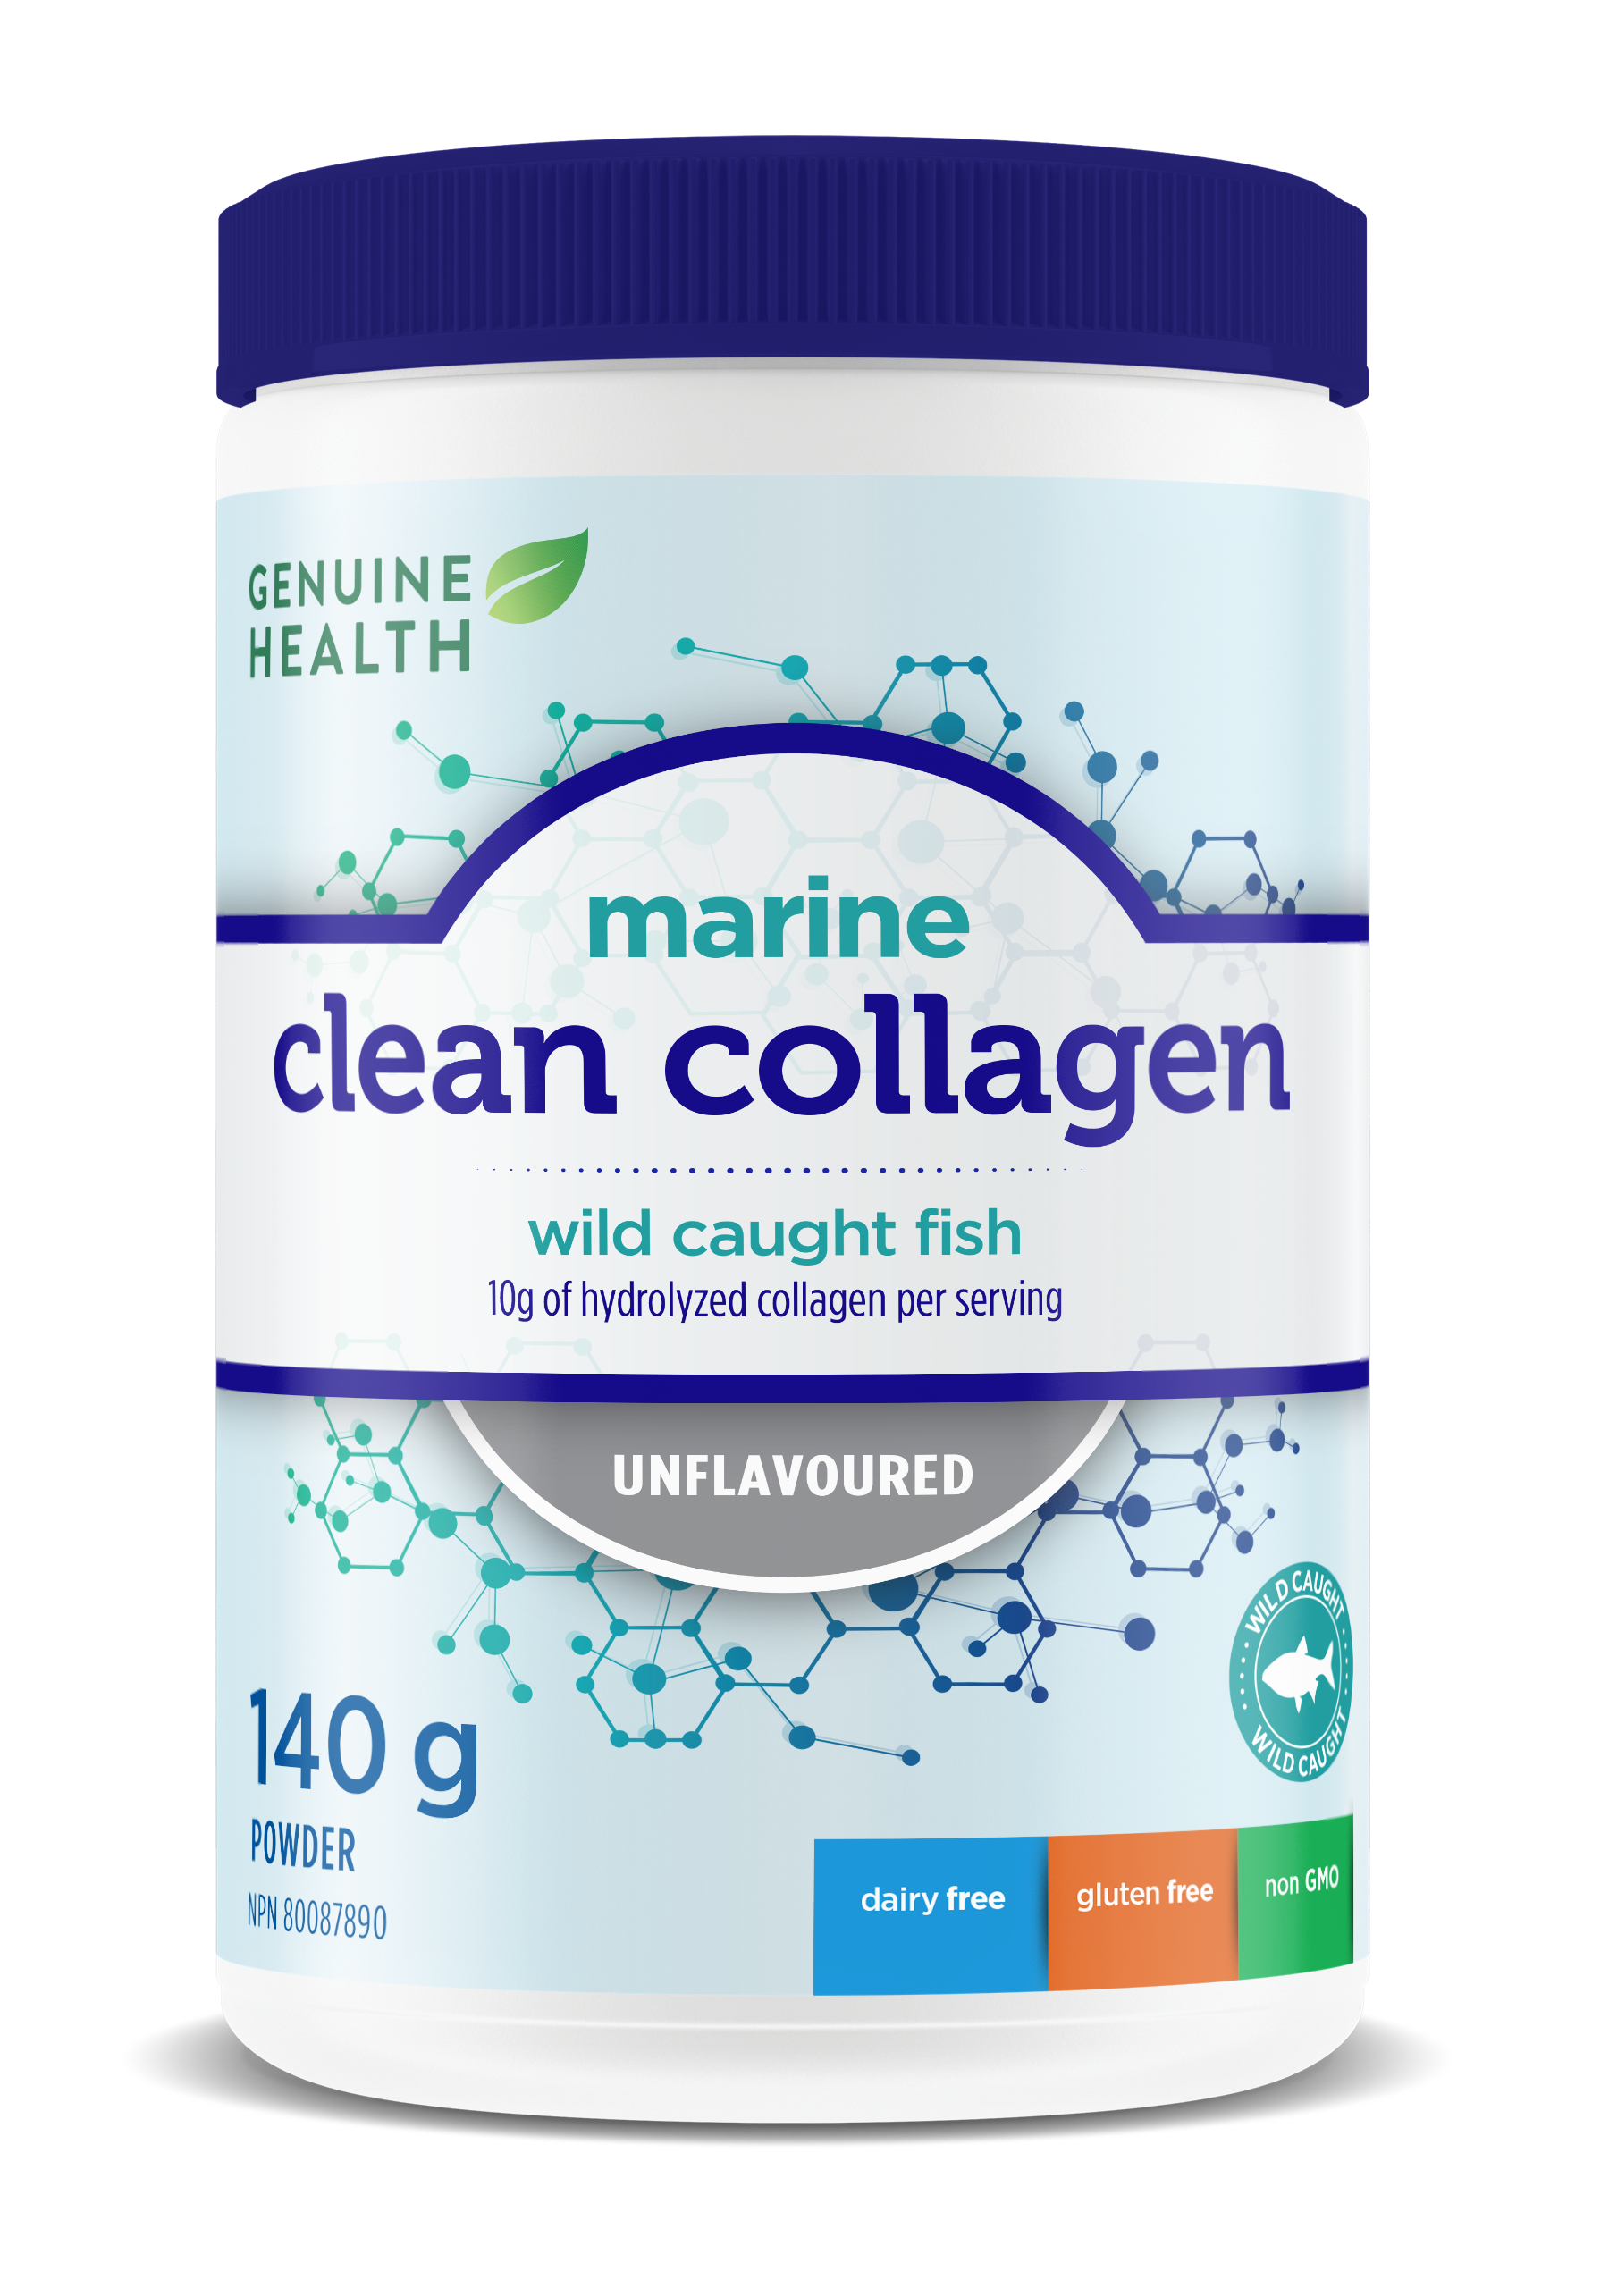 Genuine Health Marine Clean Collagen supplement